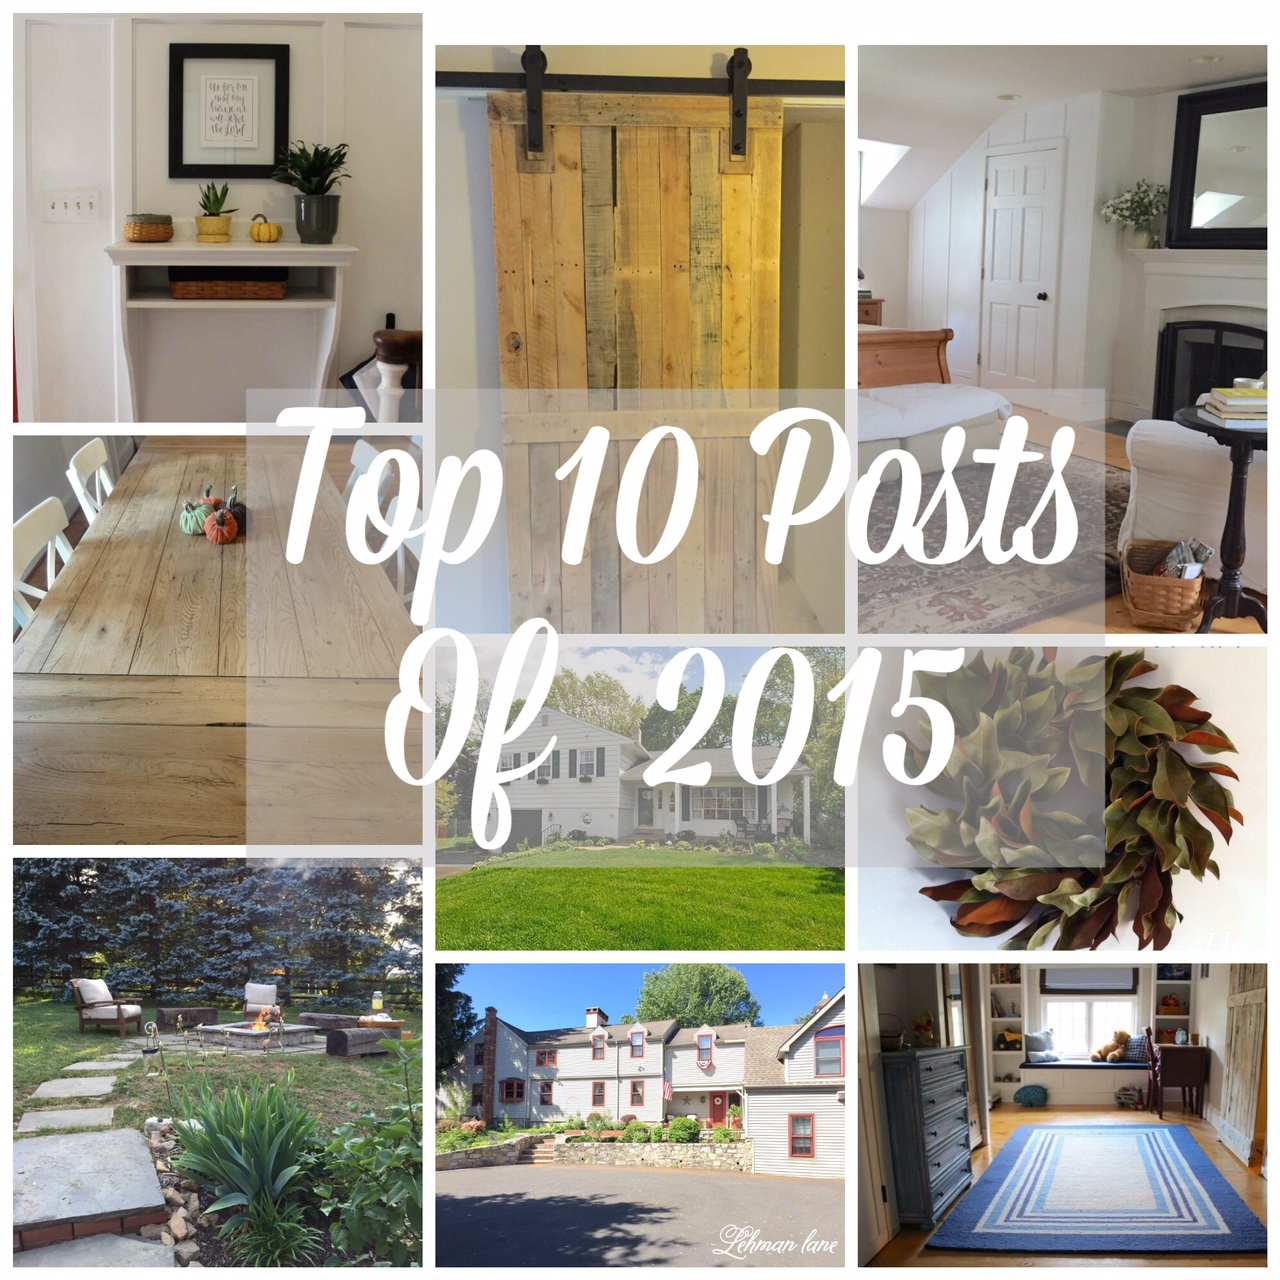 Come check out my Top 10 Posts of 2015